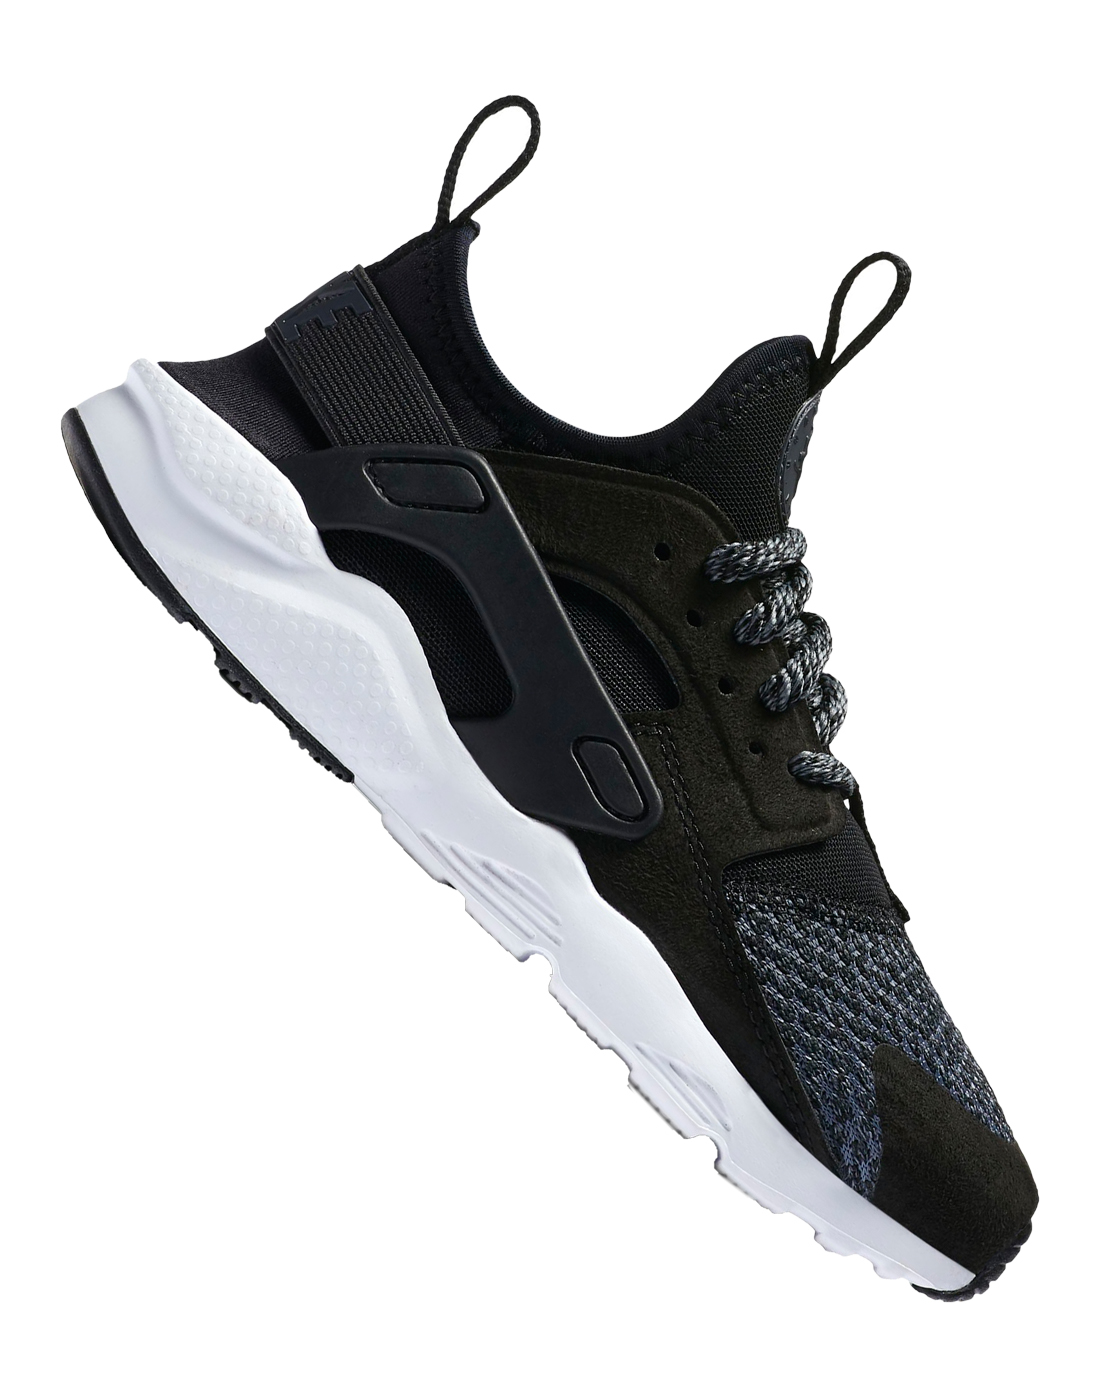 9a5c21a9d56 Nike Younger Kids Huarache Run Ultra